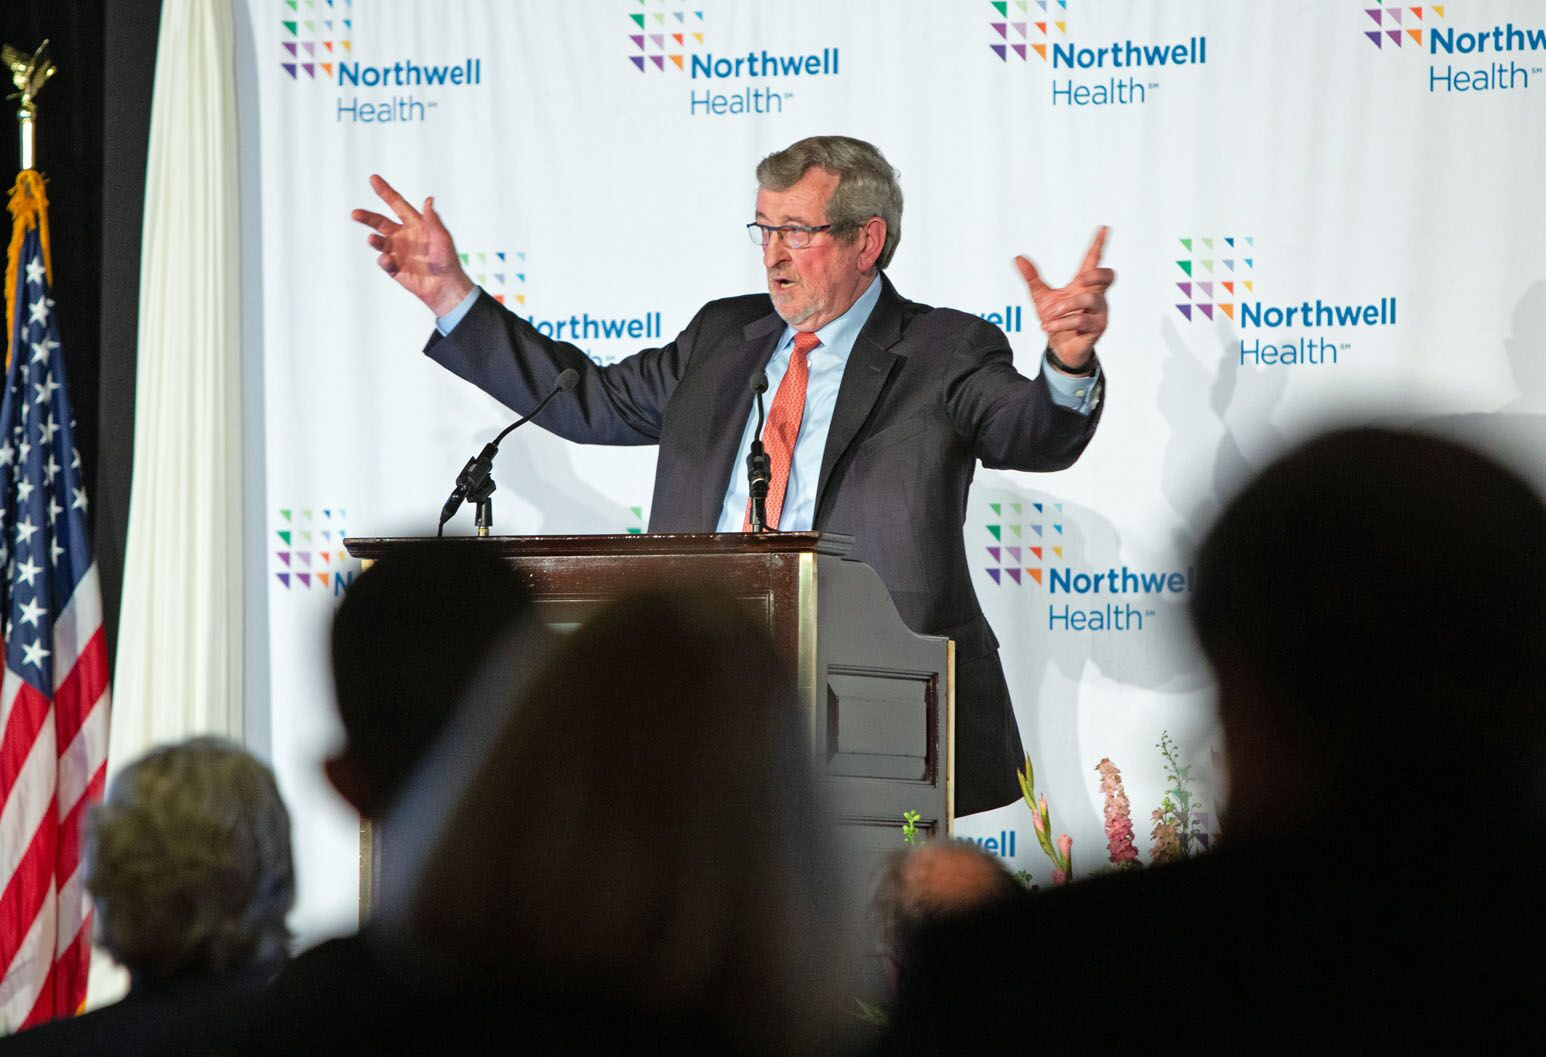 Michael Dowling, President and CEO speaks to the Board of Trustees at Northwell's annual meeting